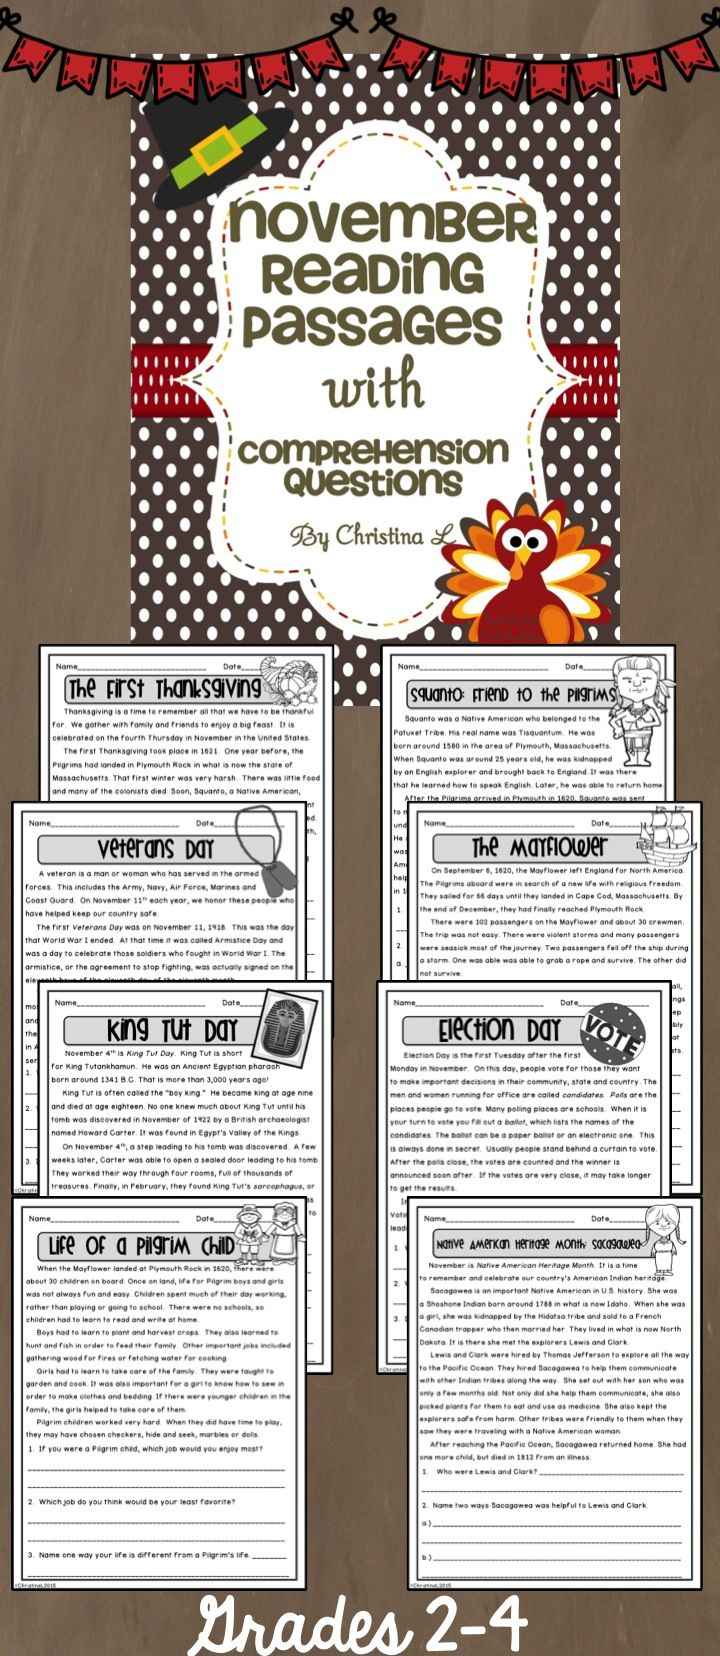 17 best images about thanksgiving school activities on pinterest early finishers election day. Black Bedroom Furniture Sets. Home Design Ideas